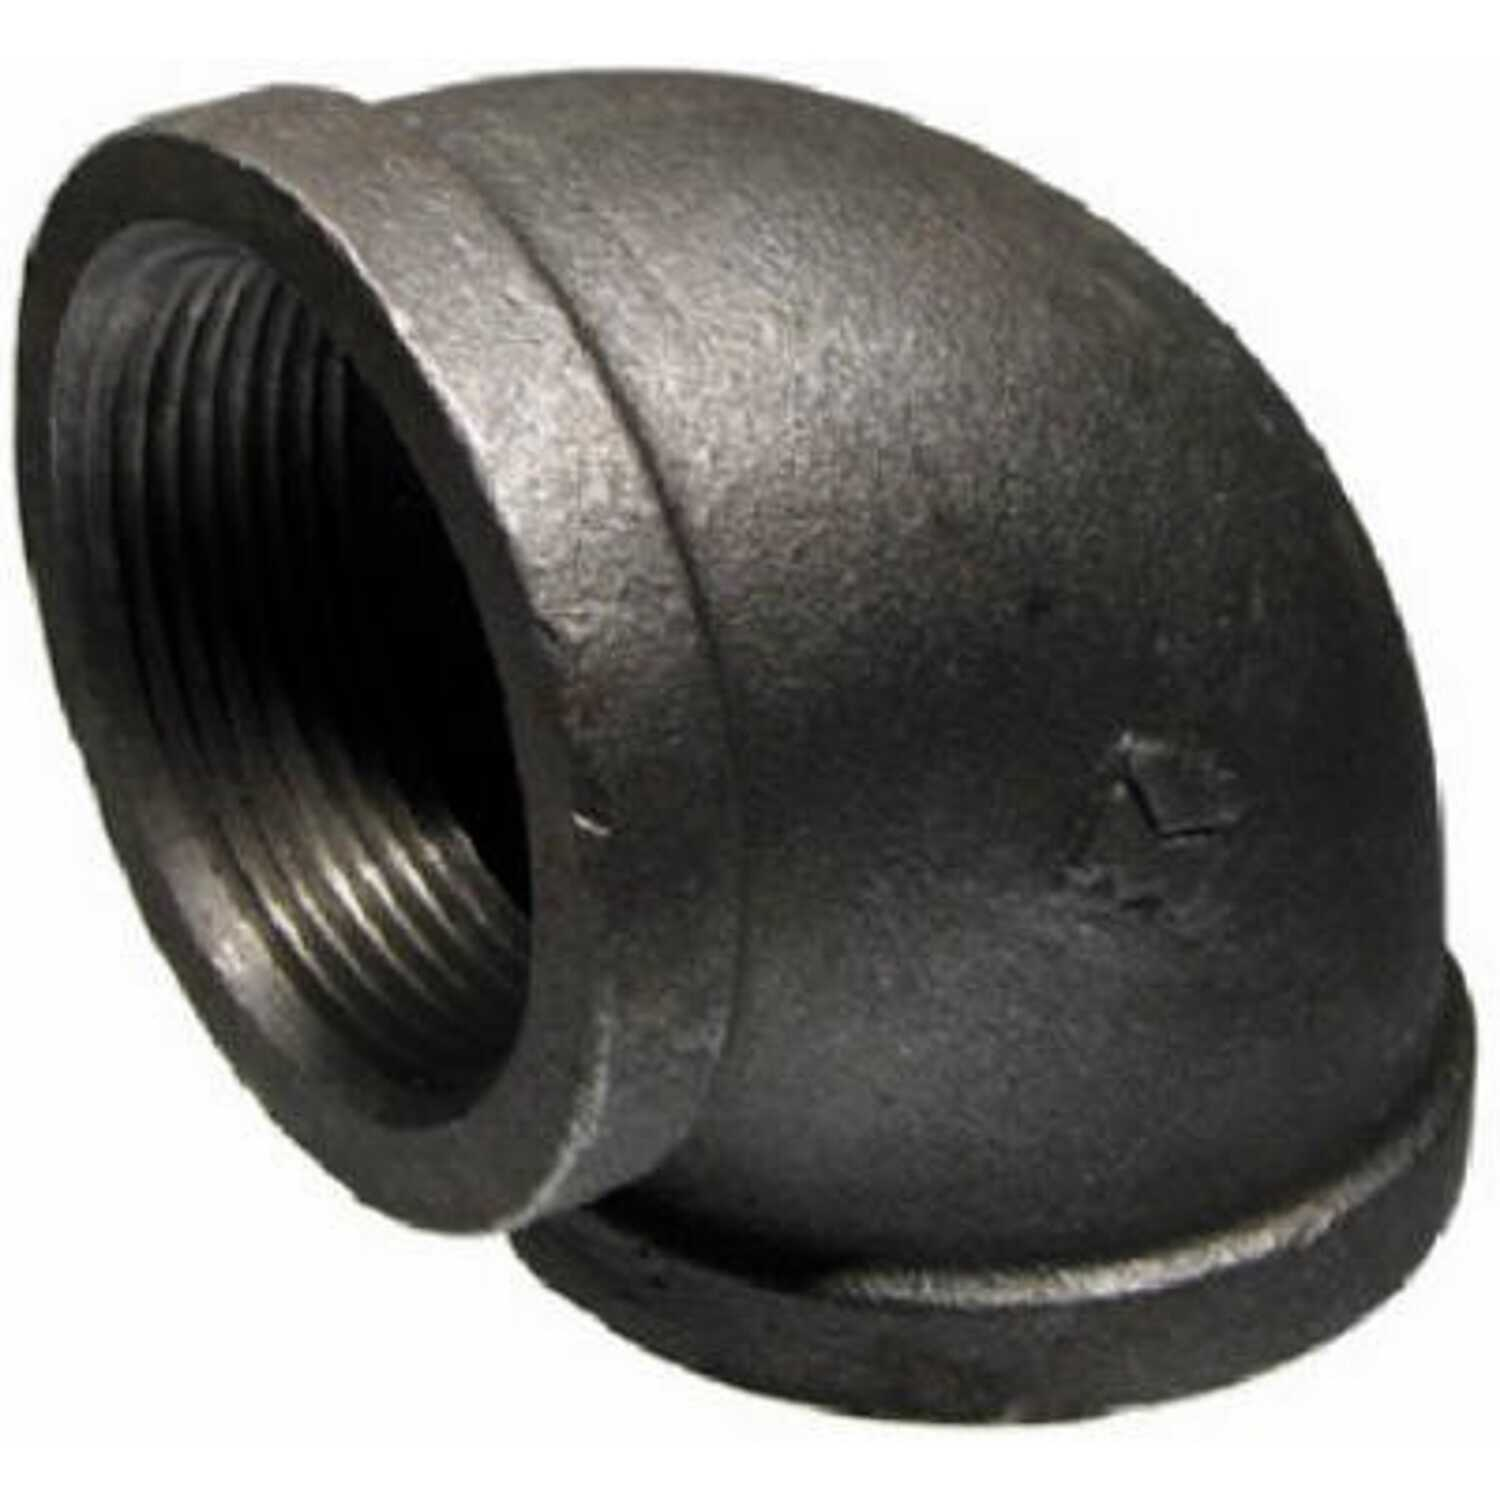 BK Products  Southland  4 in. FPT   x 4 in. Dia. FPT  Black  Malleable Iron  90 Degree Elbow